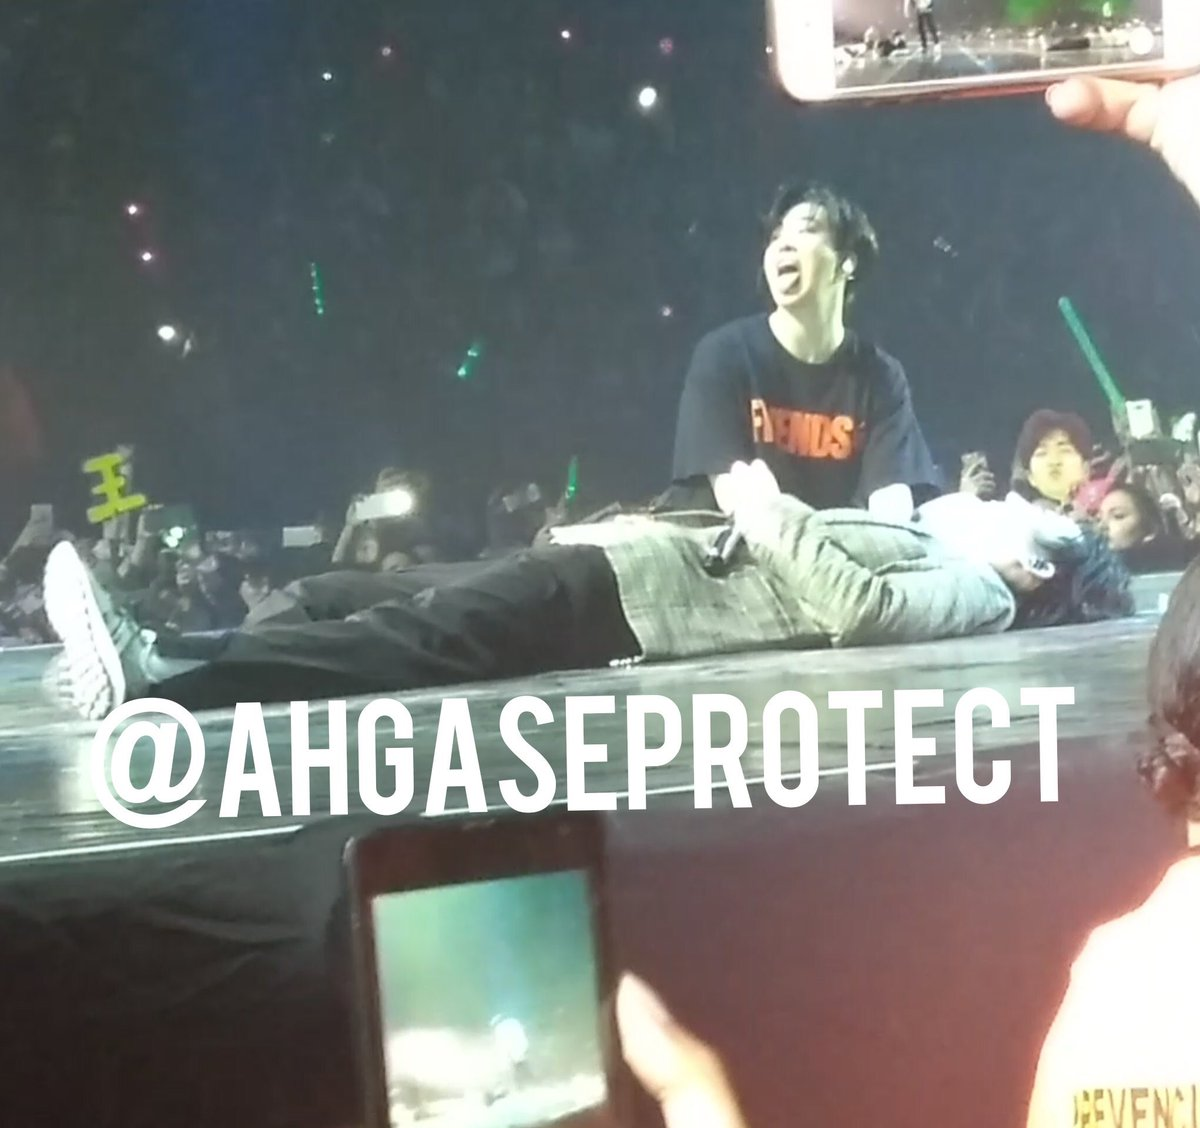 Seeing #Youngjae happy, dancing, jumping &amp; enjoying the concert made my heart relief~   I know he would overcome his sickness by the thought of meeting with thousands of IGOT7 which give him strength.   Thank you to IGOT7 worldwide for showing sunshine Youngjae your love  <br>http://pic.twitter.com/OzUdCt7pOs